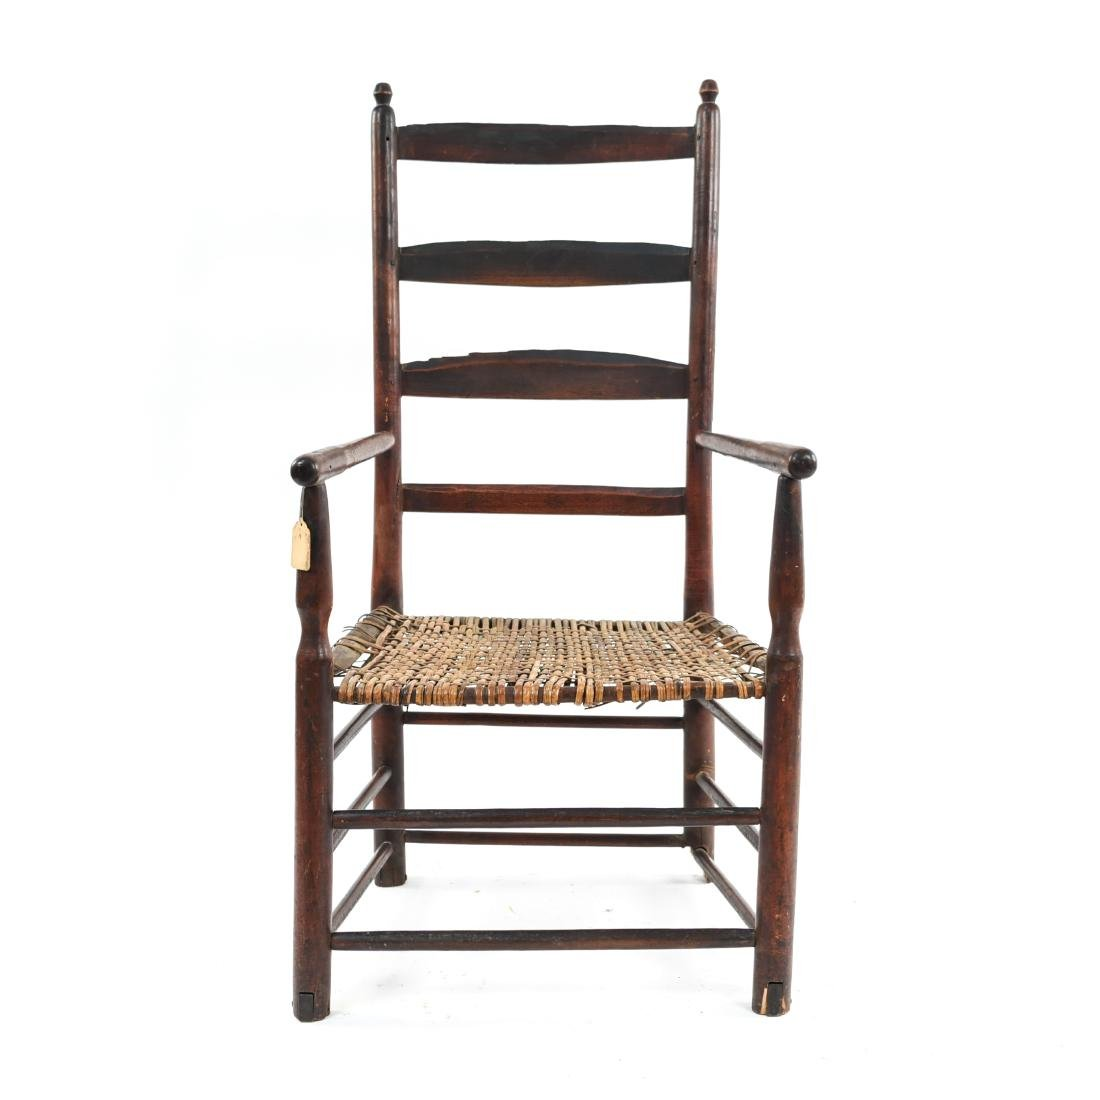 ANTIQUE LADDER BACK CHAIR - 2